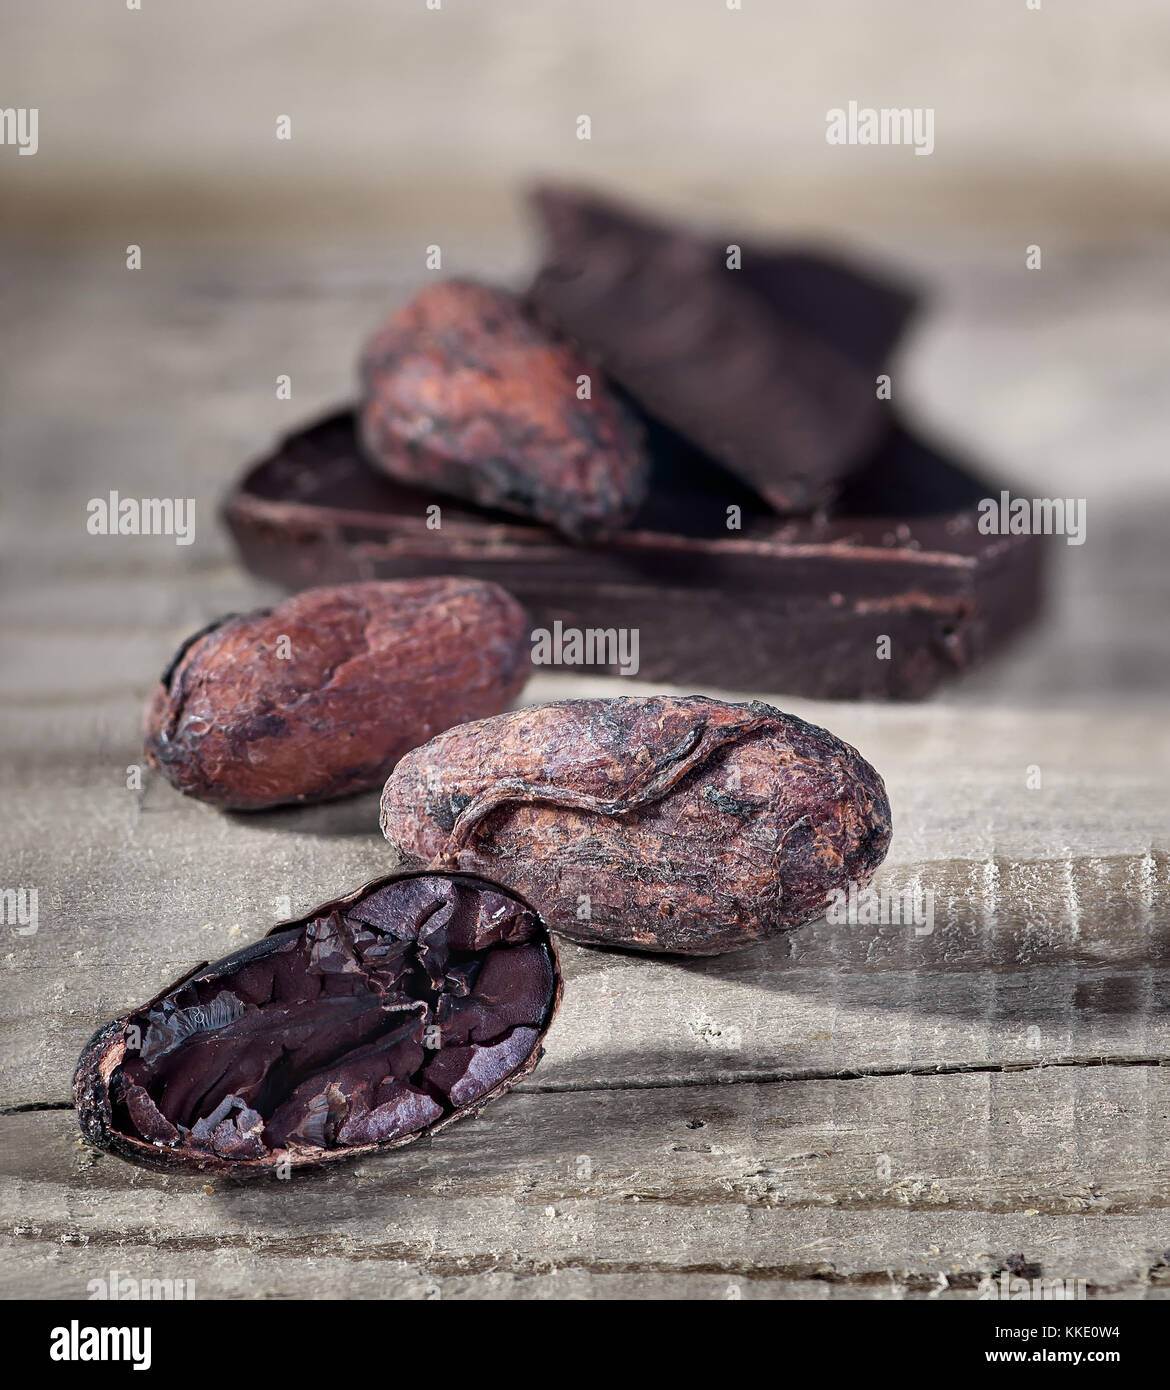 Cocoa beans and piece of dark chocolate - Stock Image